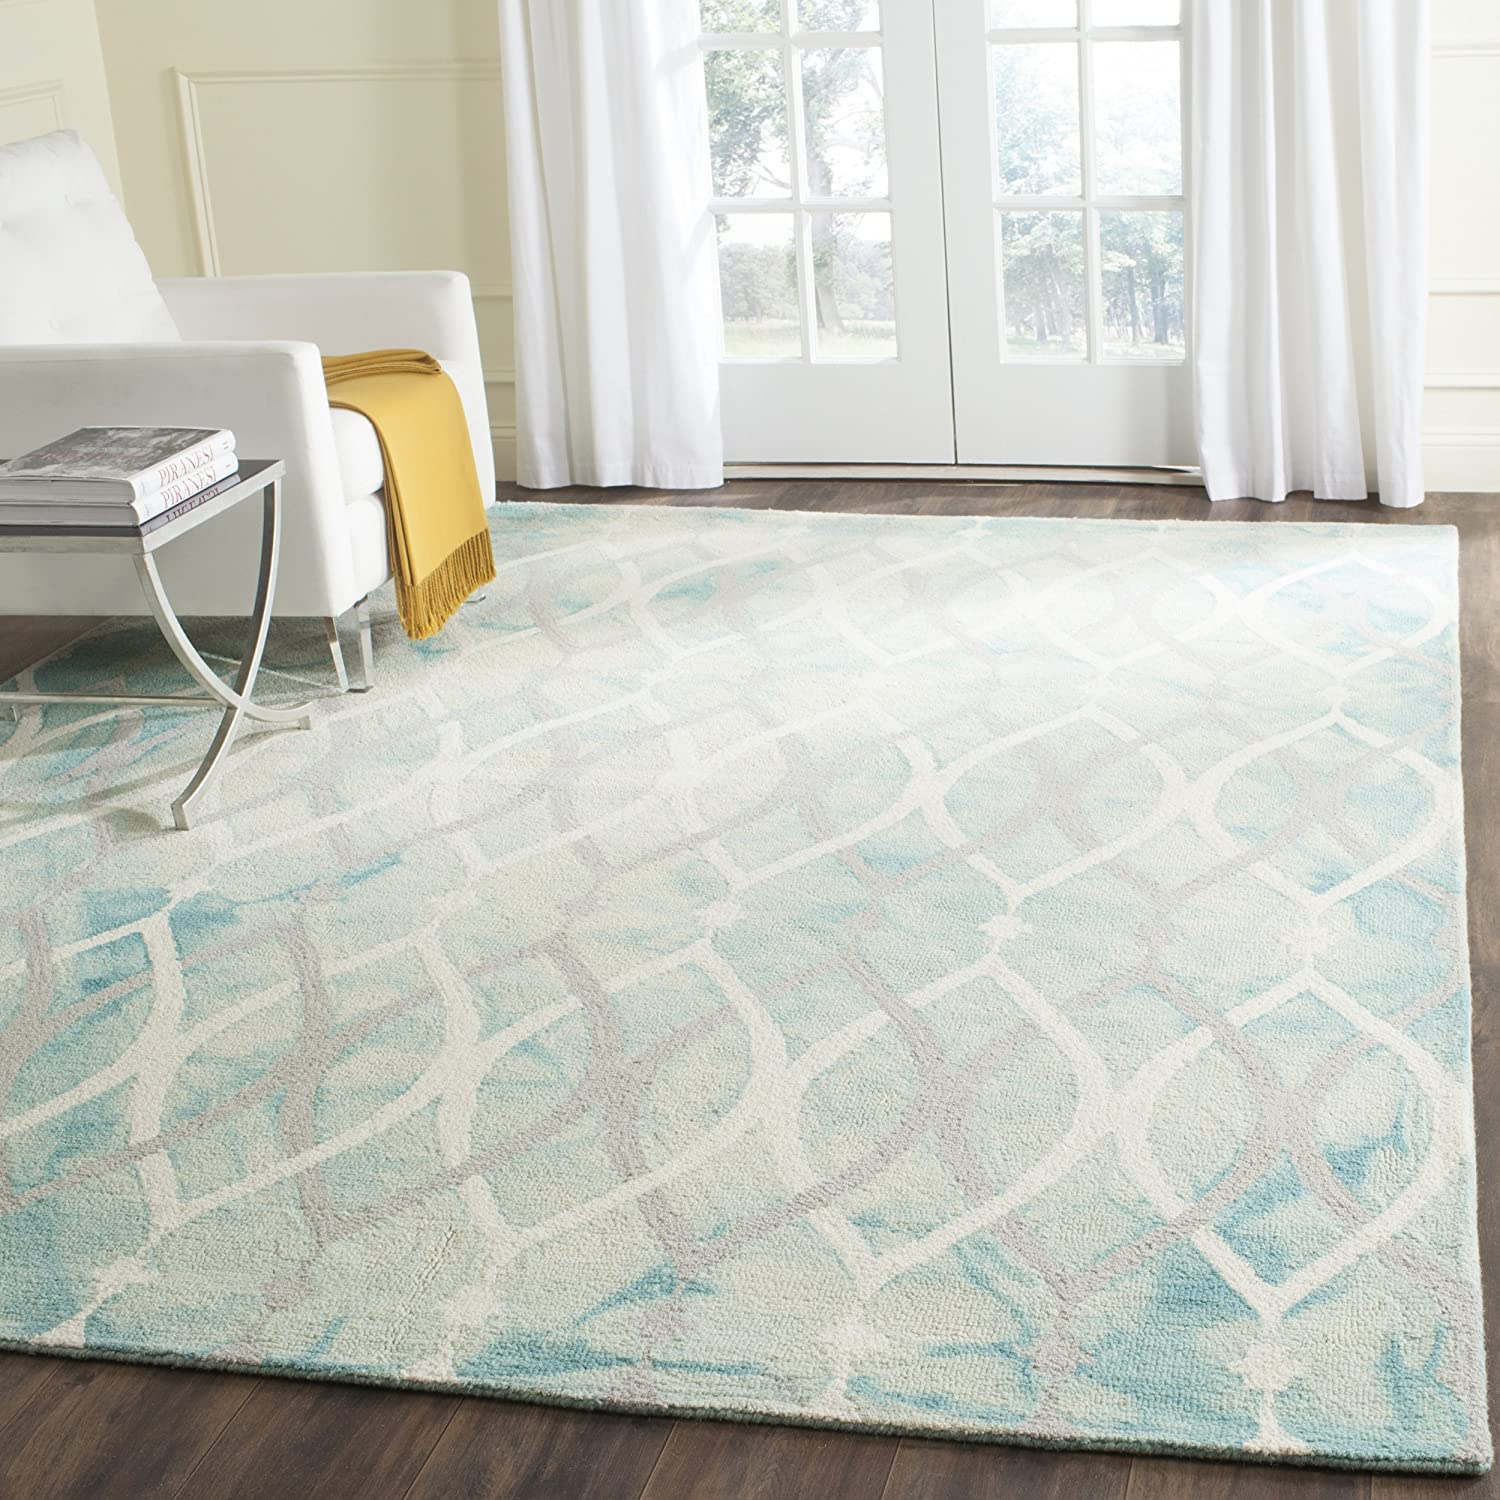 Amazon Com Safavieh Dip Dye Collection Ddy534q Handmade Modern Geometric Watercolor Green And Ivory Grey Wool Area Rug 8 X 10 Furniture Decor